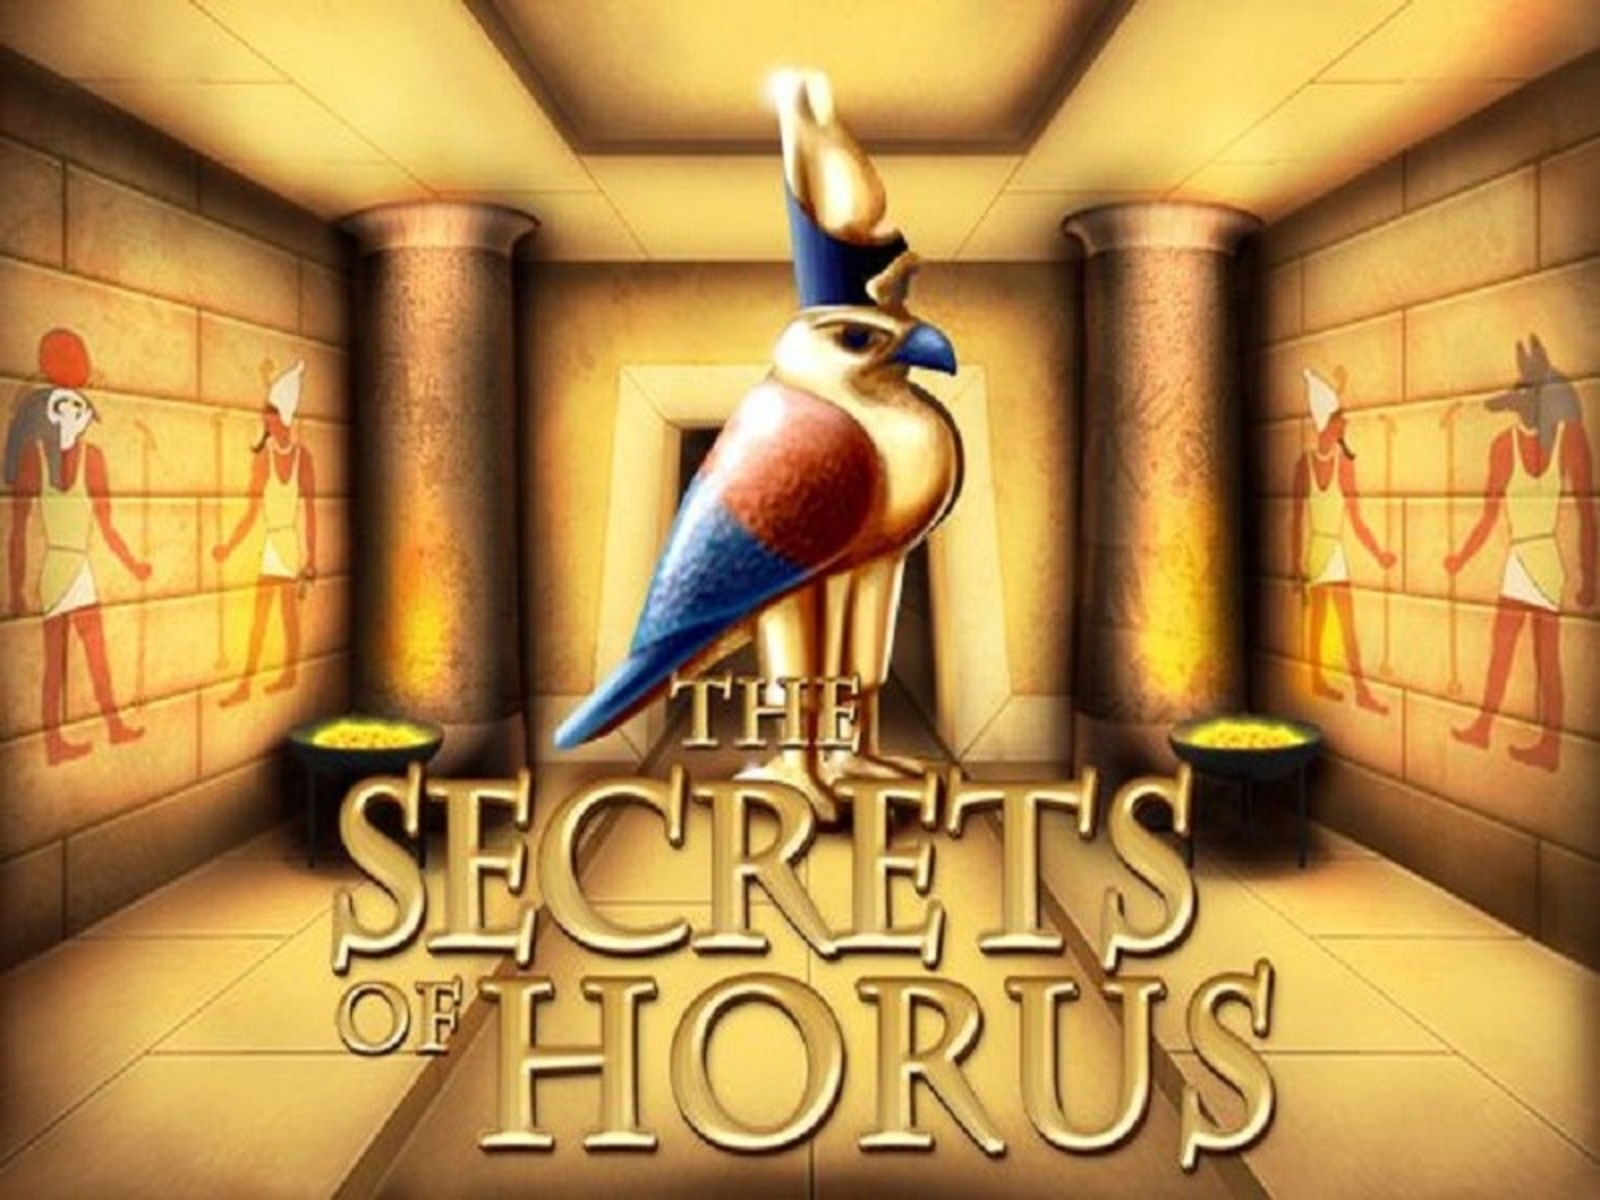 Se Secrets of Horus Online Slot Demo Game, NetEnt